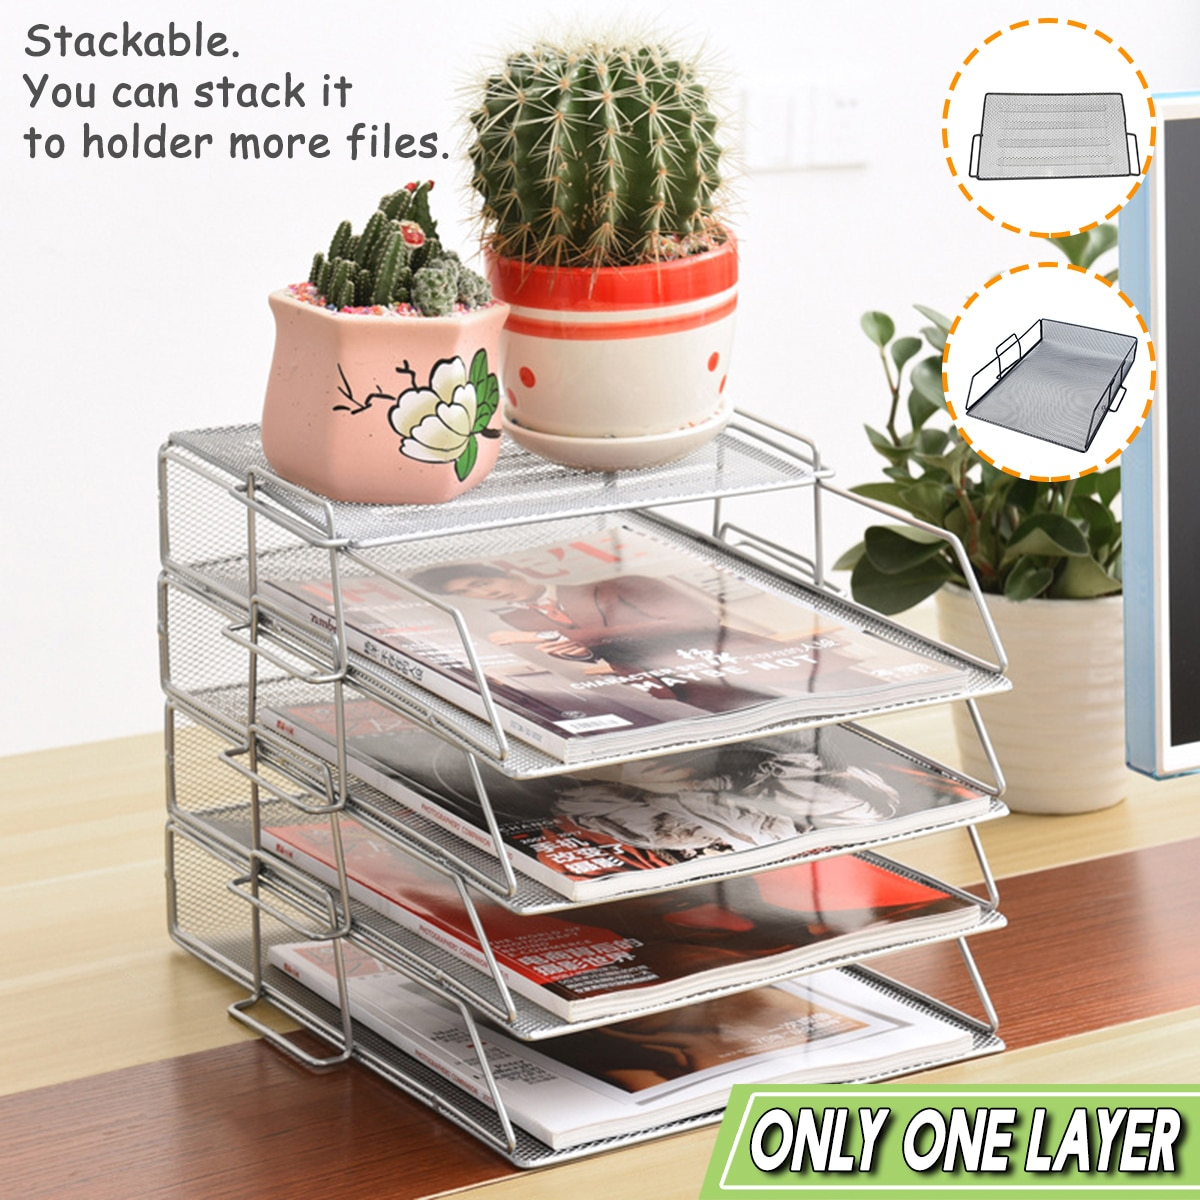 Stackable Iron Mesh A4 Paper Organizer Document File Storage Basket Holder Desktop Office Book Magazine Newspaper Storage Tray